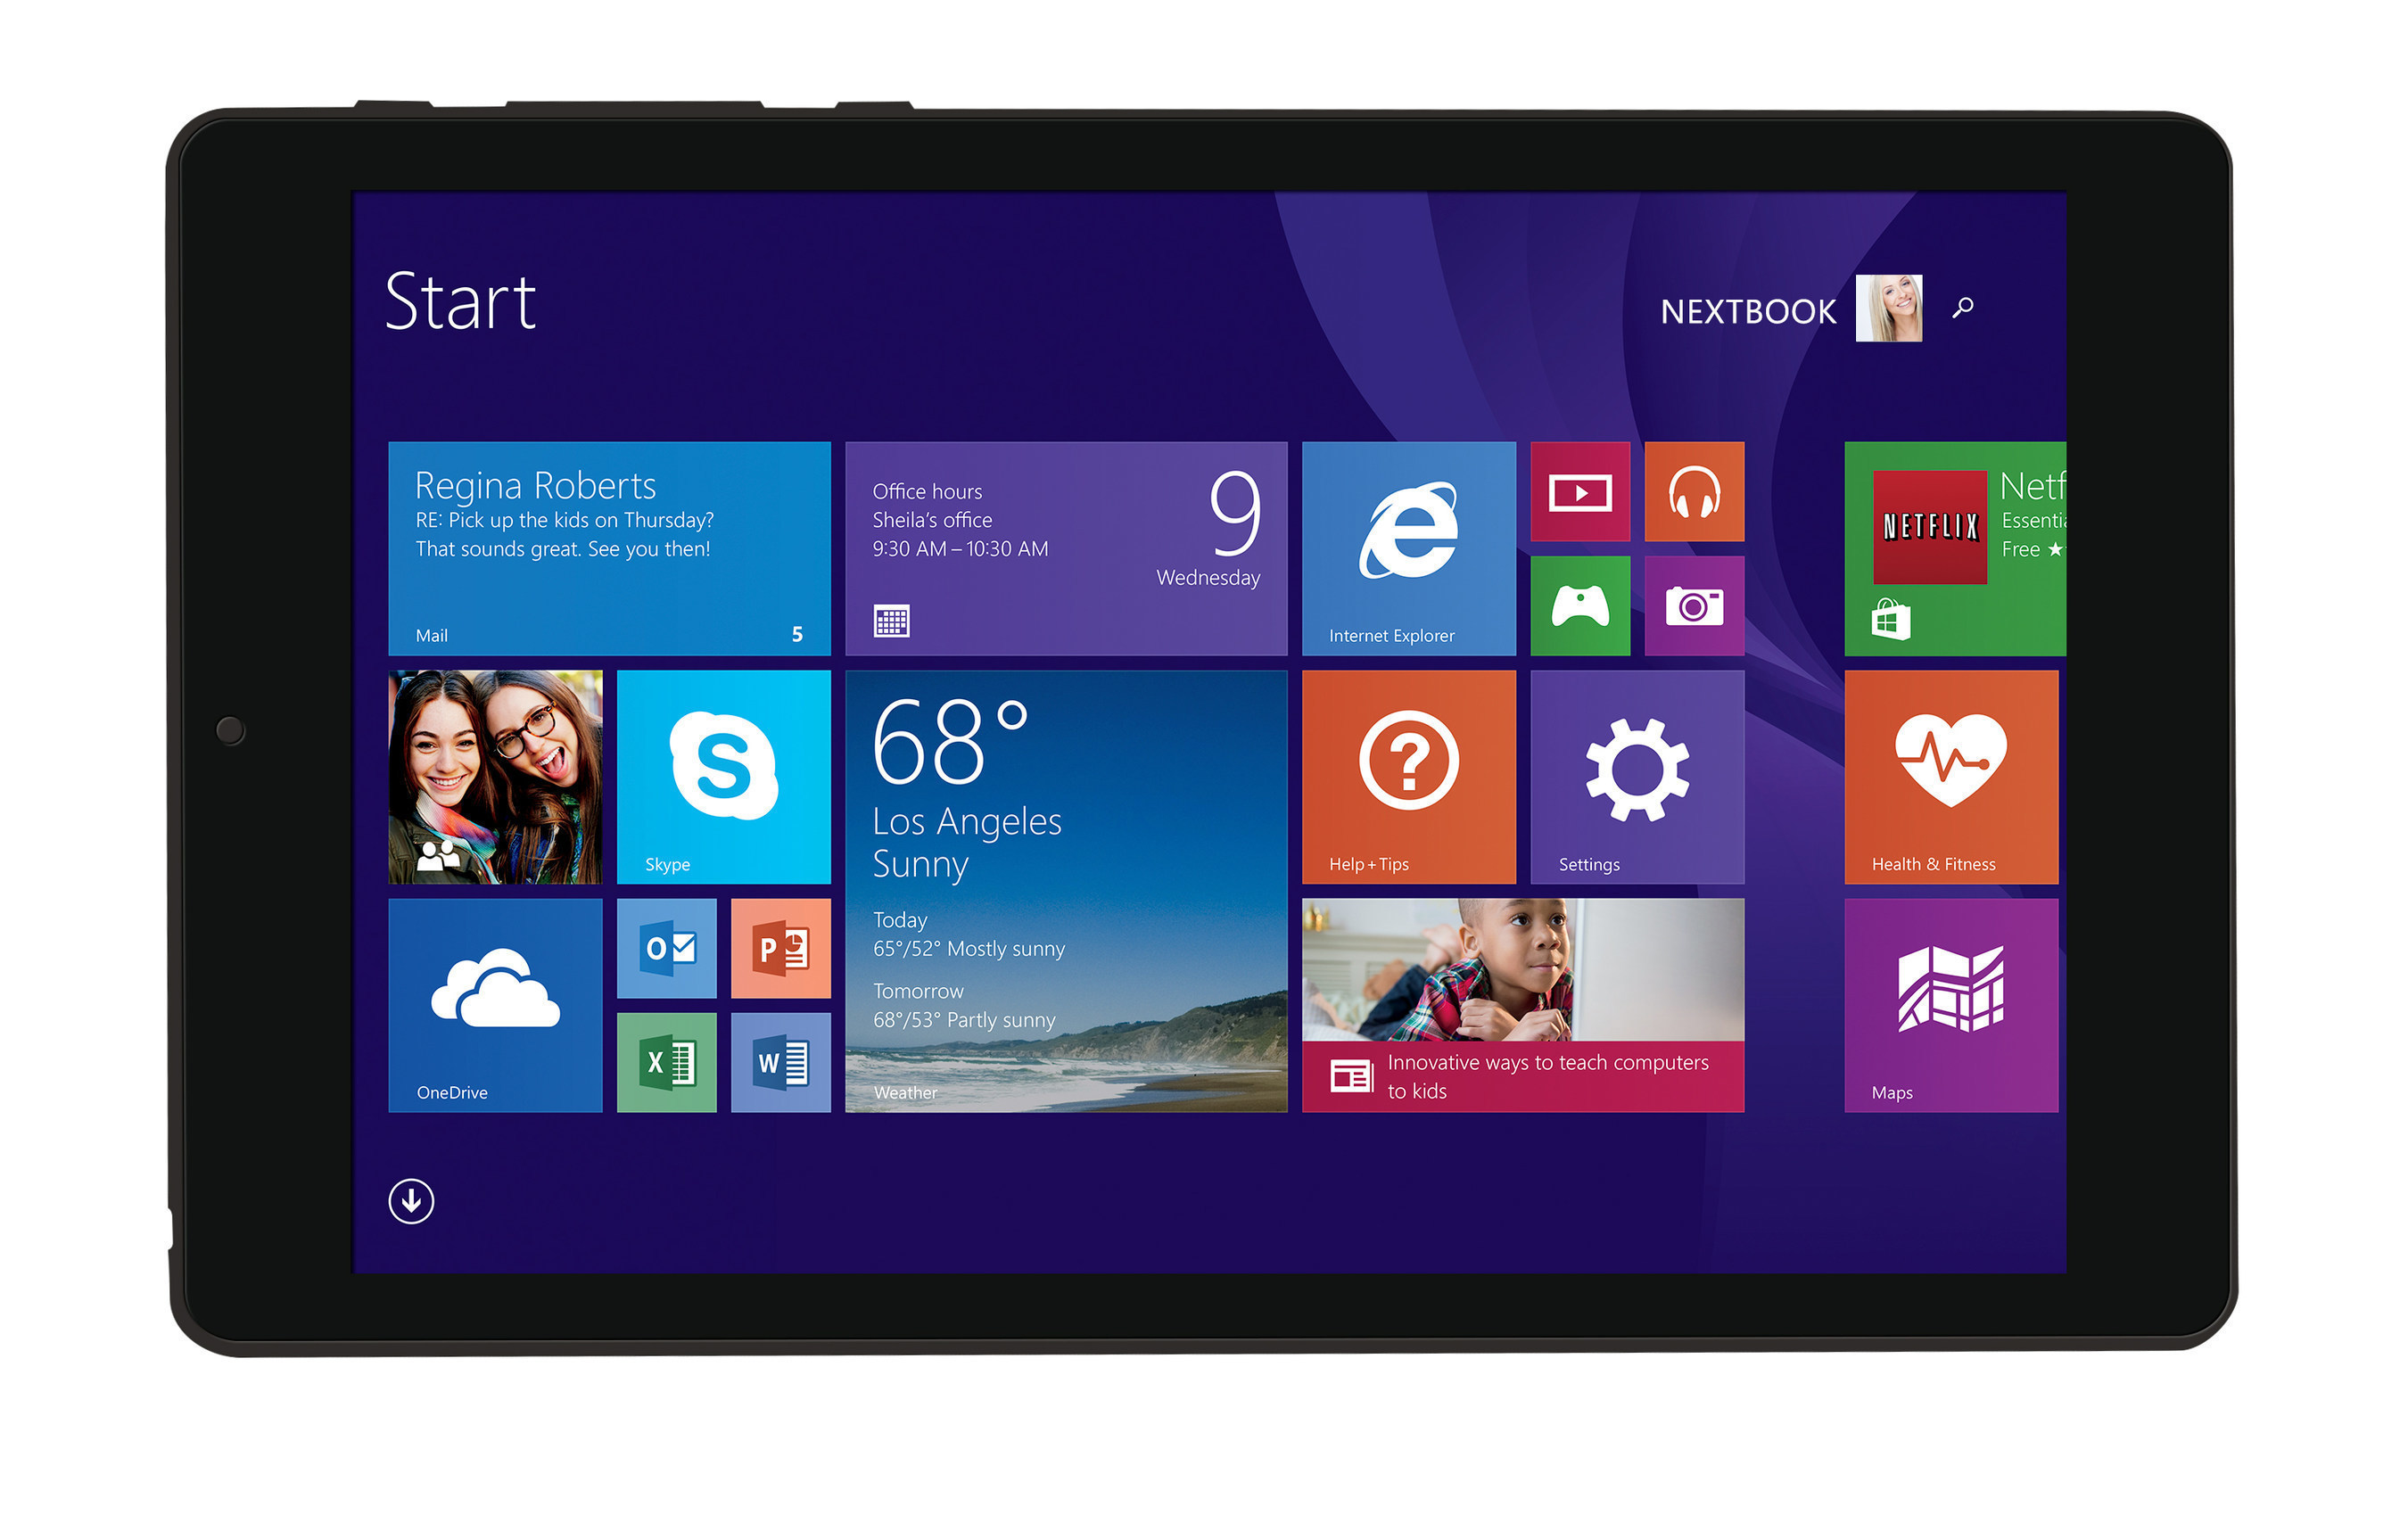 Nextbook Flexx 8 Windows Tablet Introduced at Walmart.com